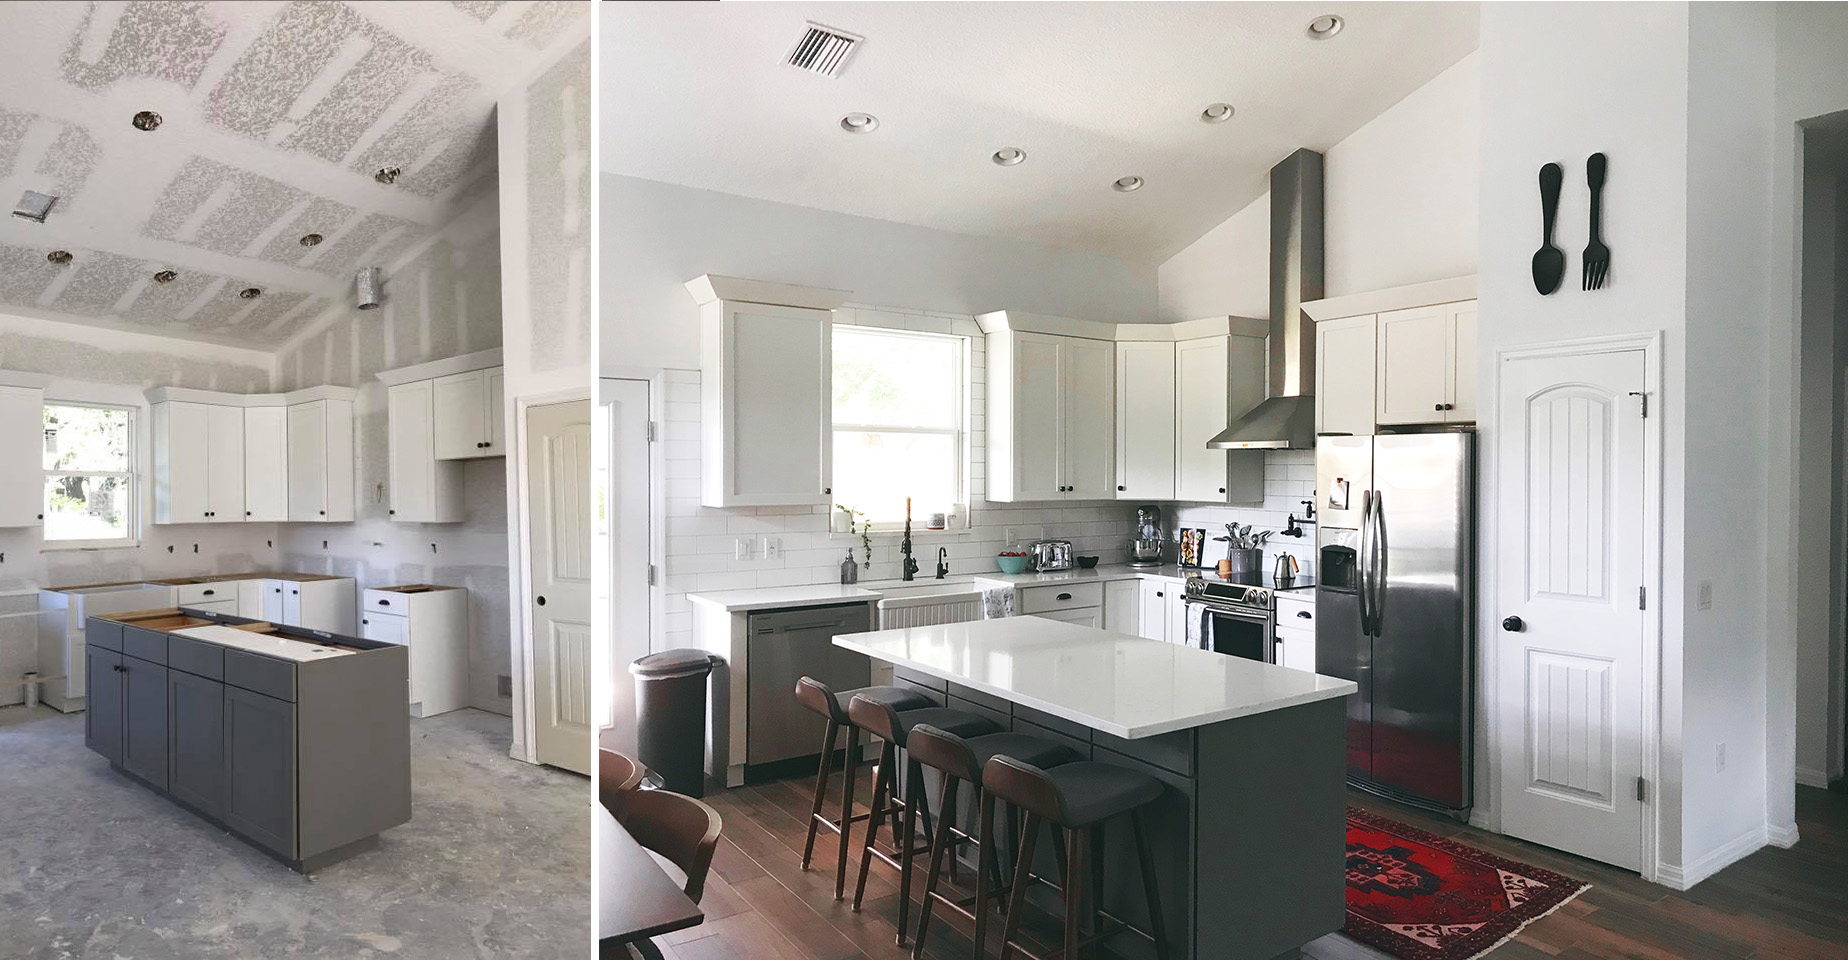 This is the gorgeous and very nicely decorated kitchen in the home above. The owners absolutely love their new space. They're great cooks too ;)